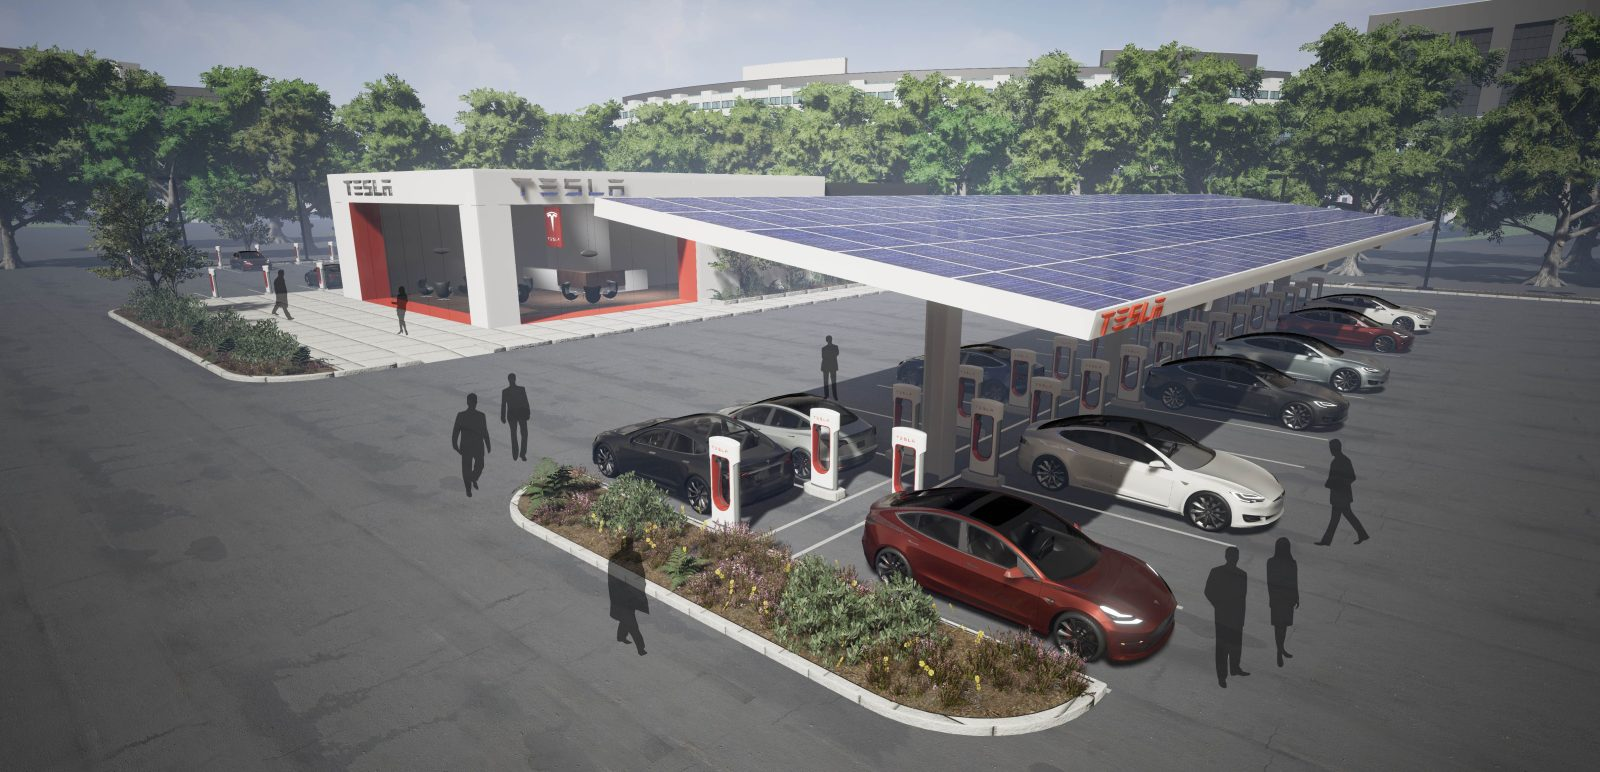 Tesla plans to disconnect 'almost all' Superchargers from the grid